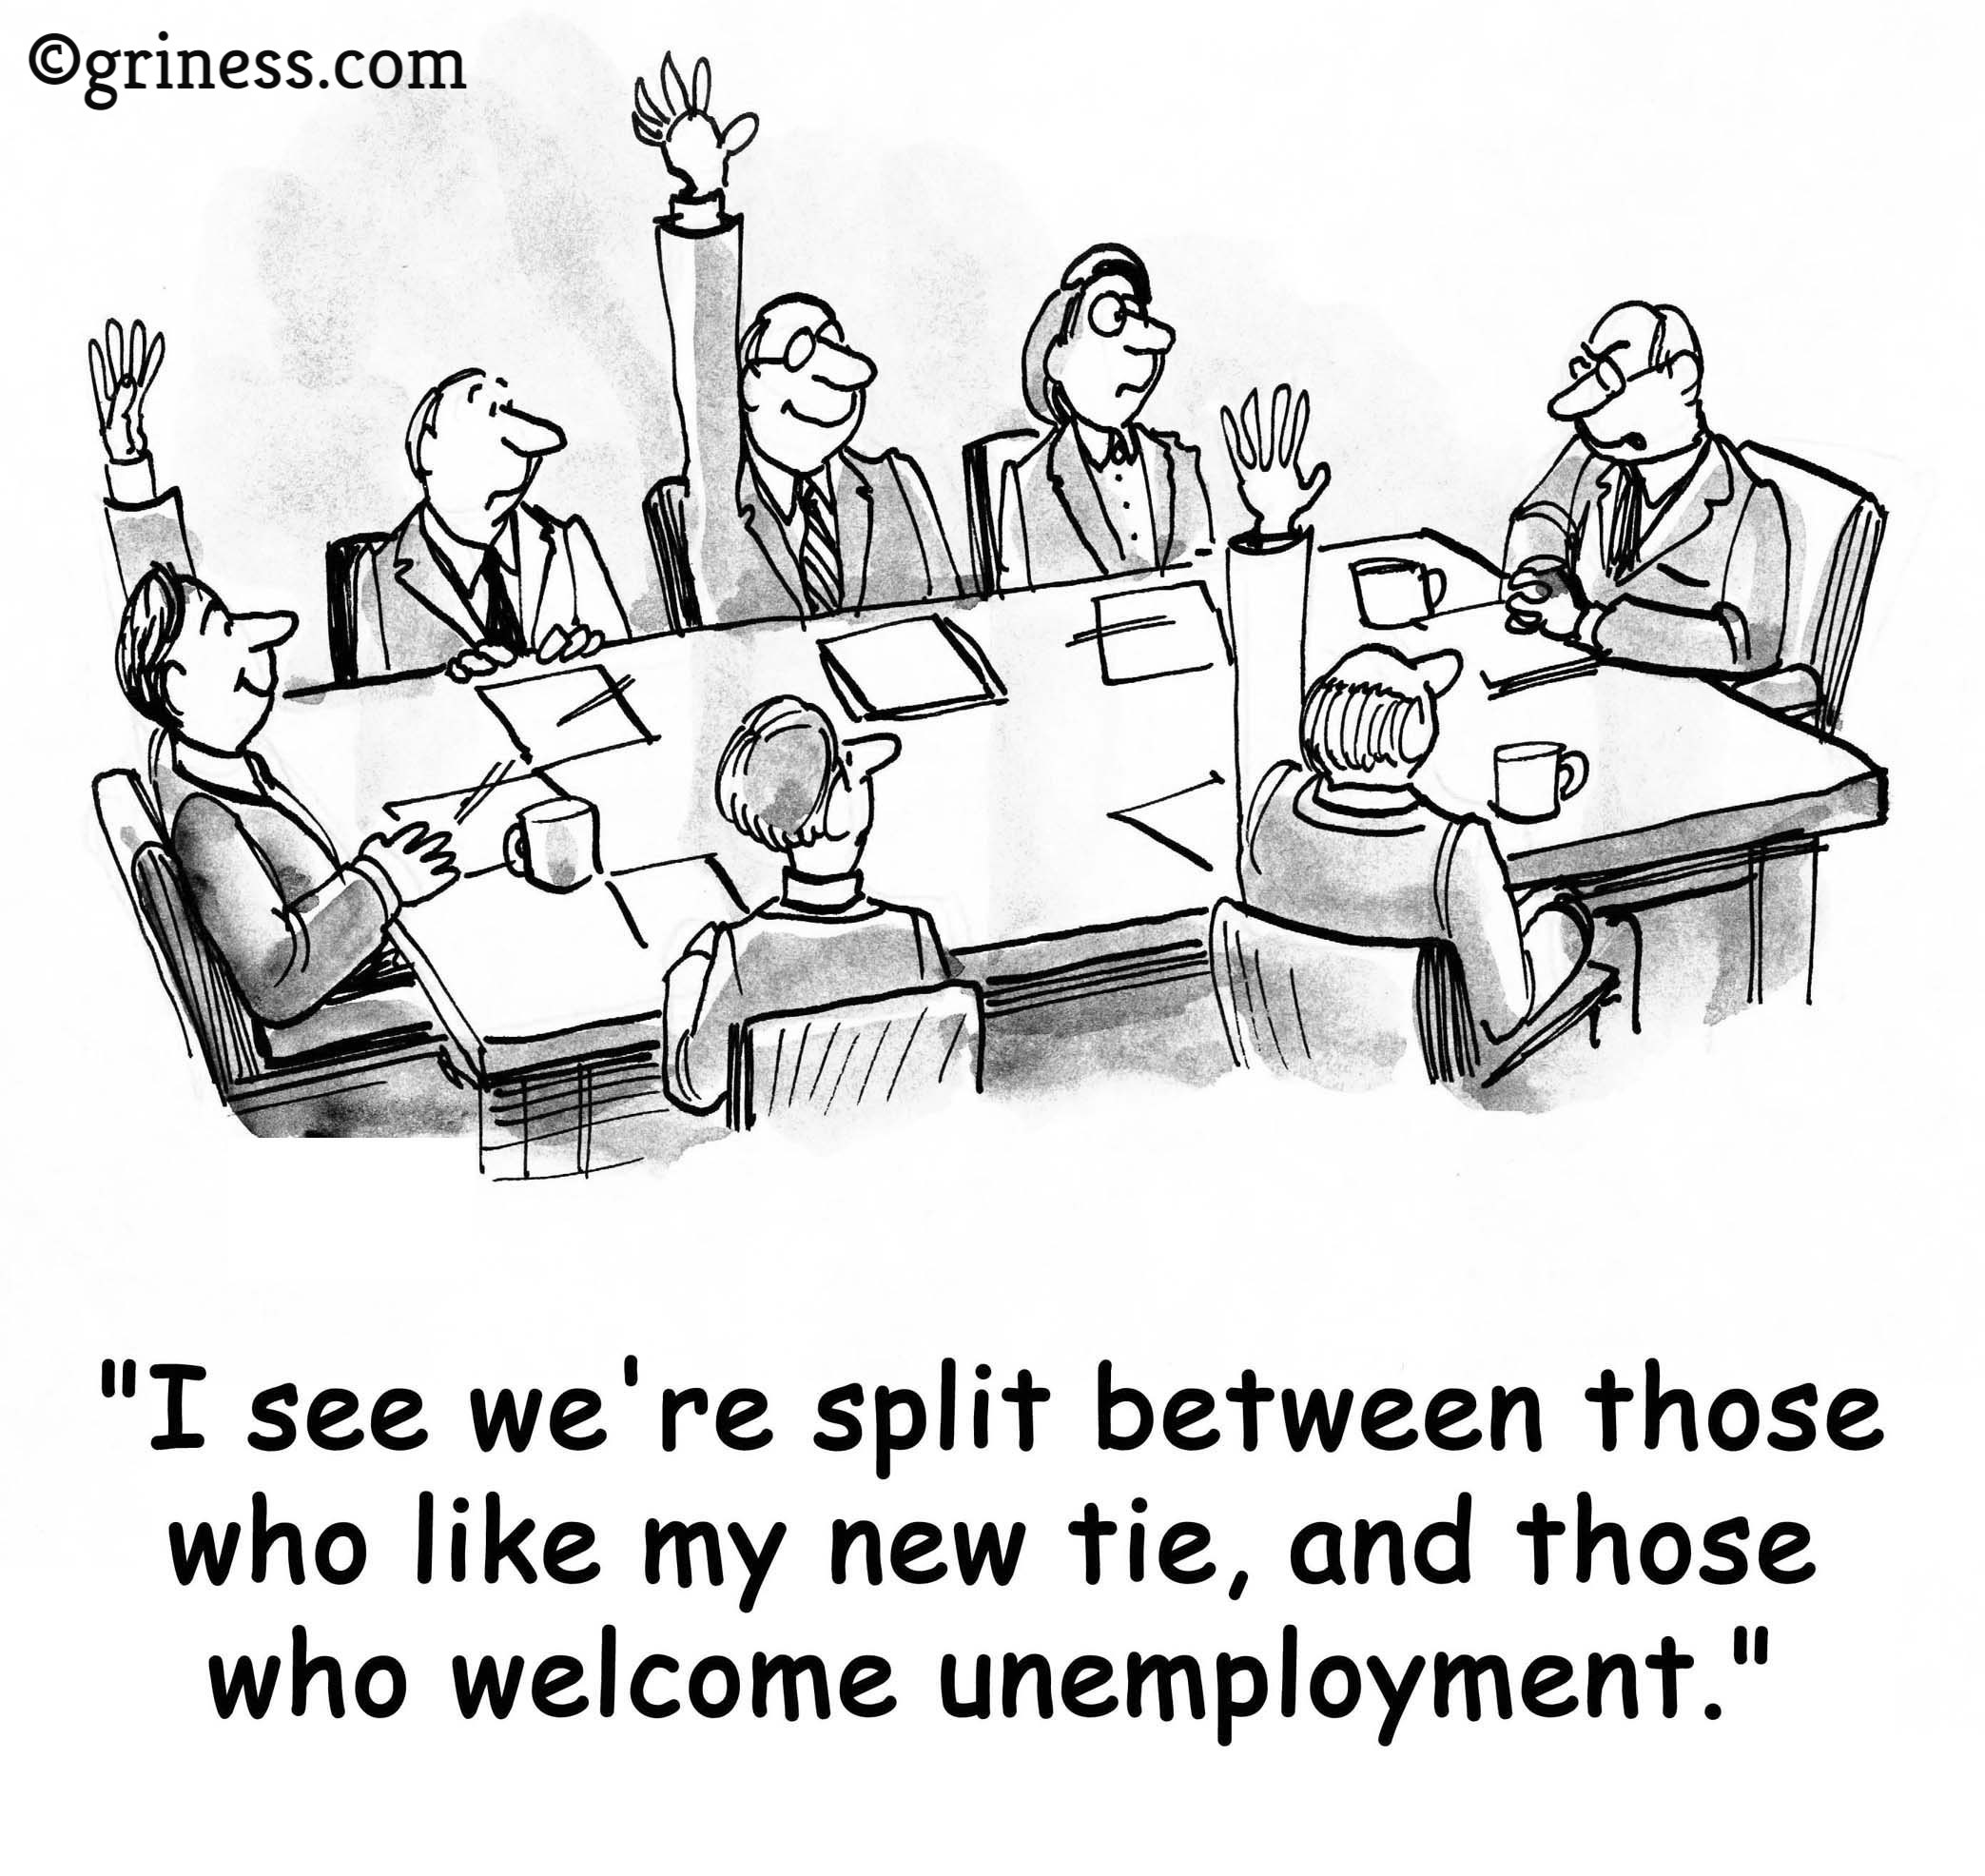 we-are-split-between-those-who-like-my-new-tie-and-those-who-welcome-unemployment-management